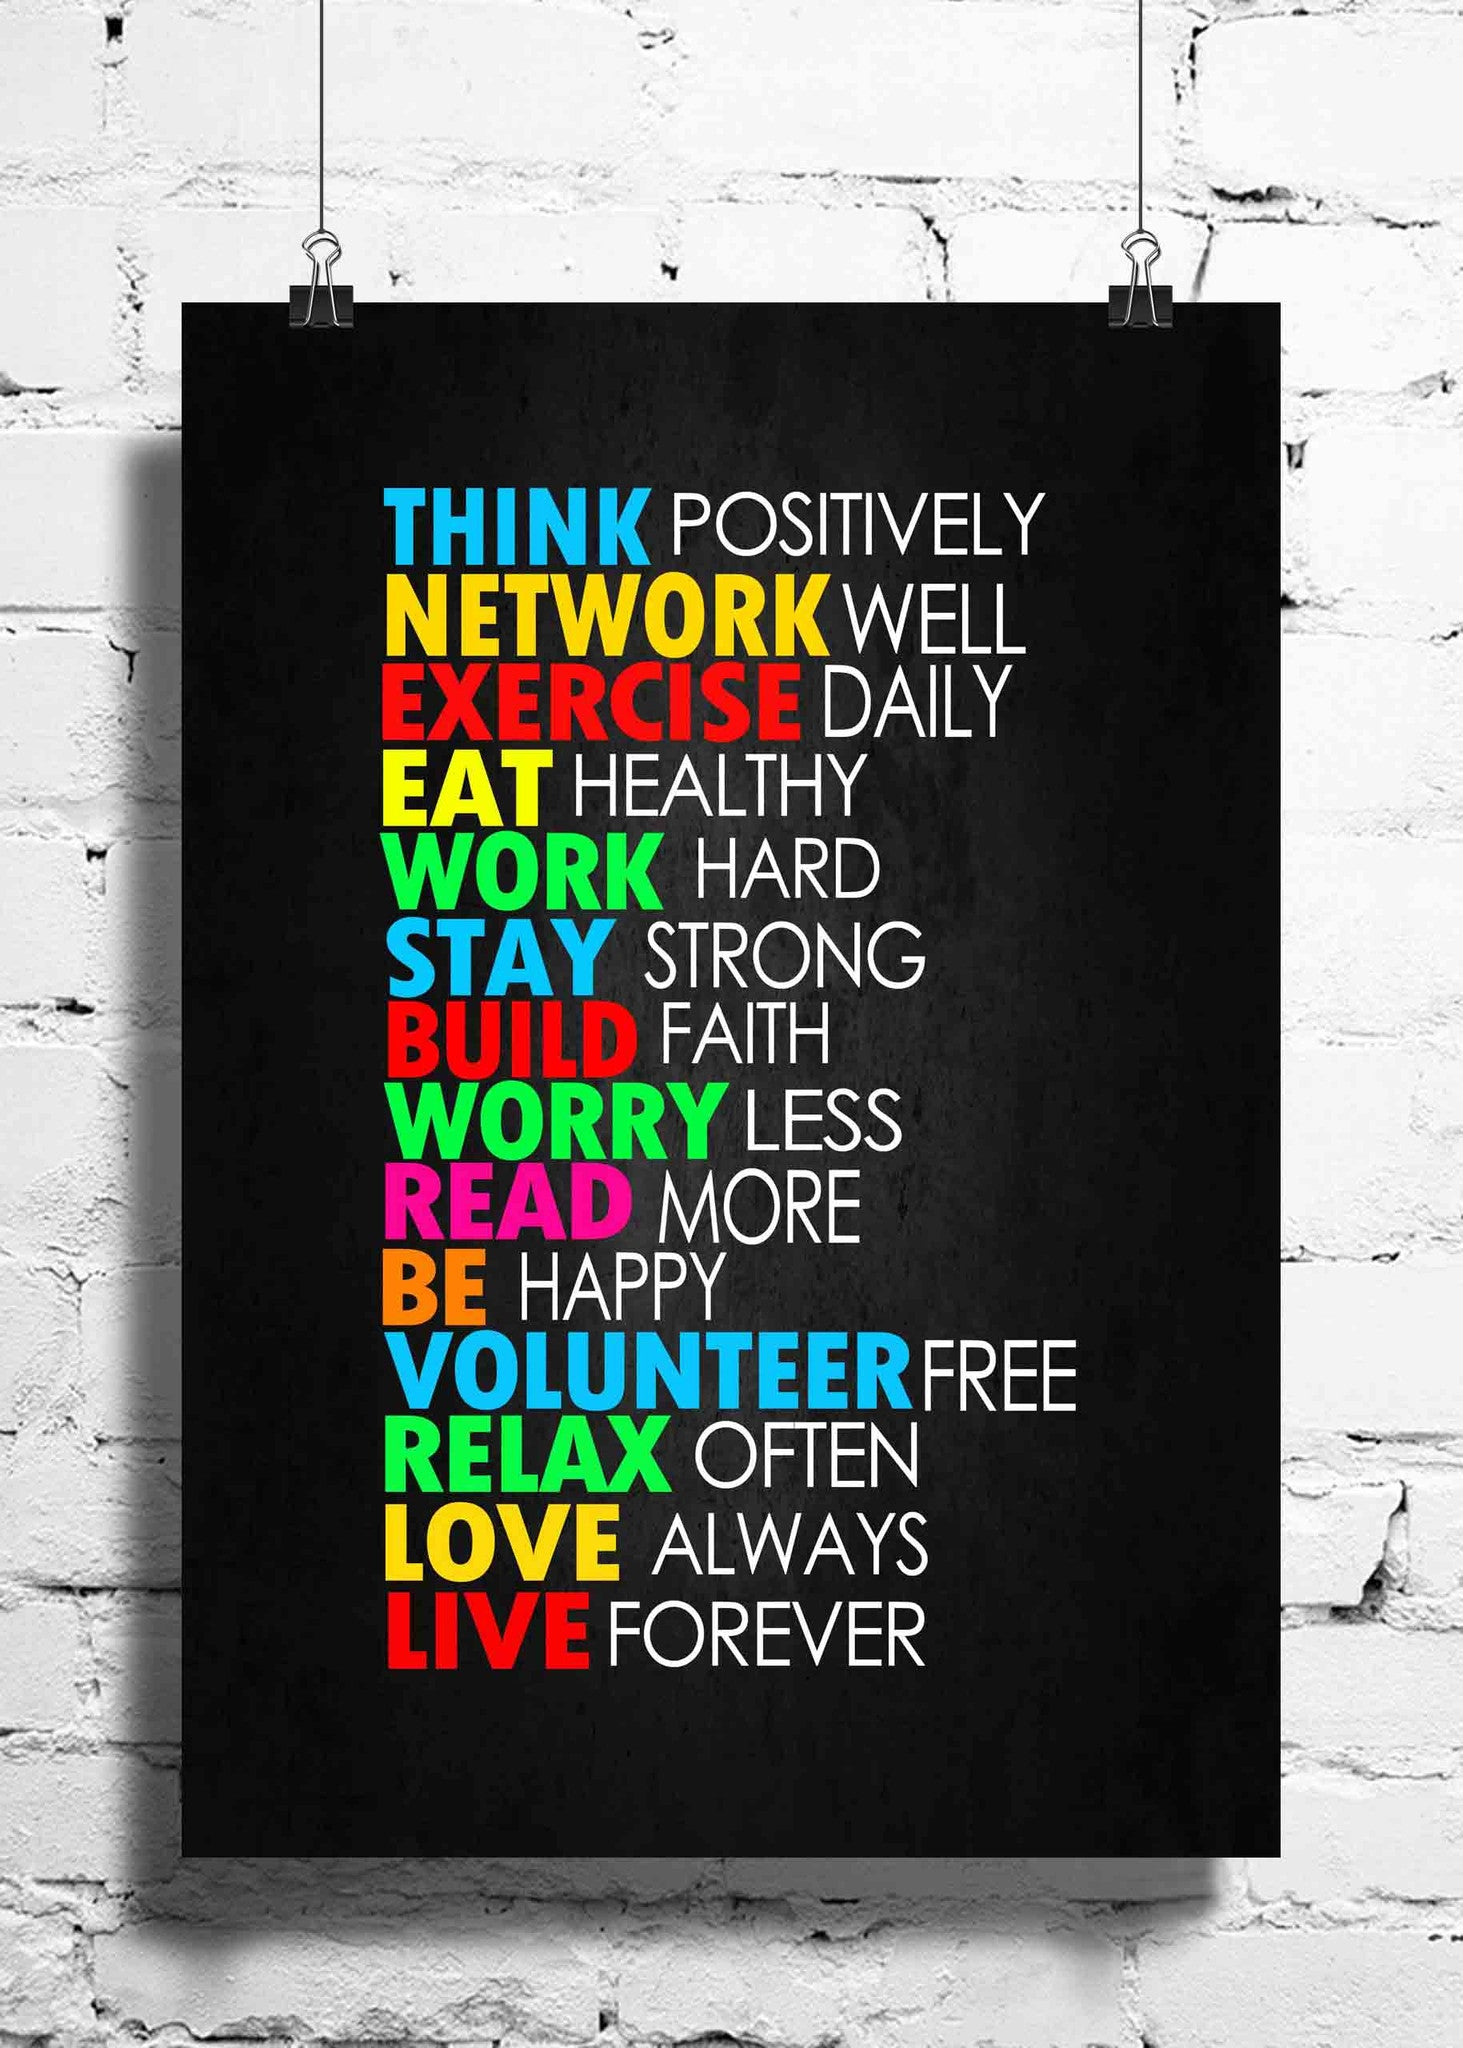 Cool Abstract Motivation Think positively wall posters, art prints, stickers decals - stuffpanda - 1